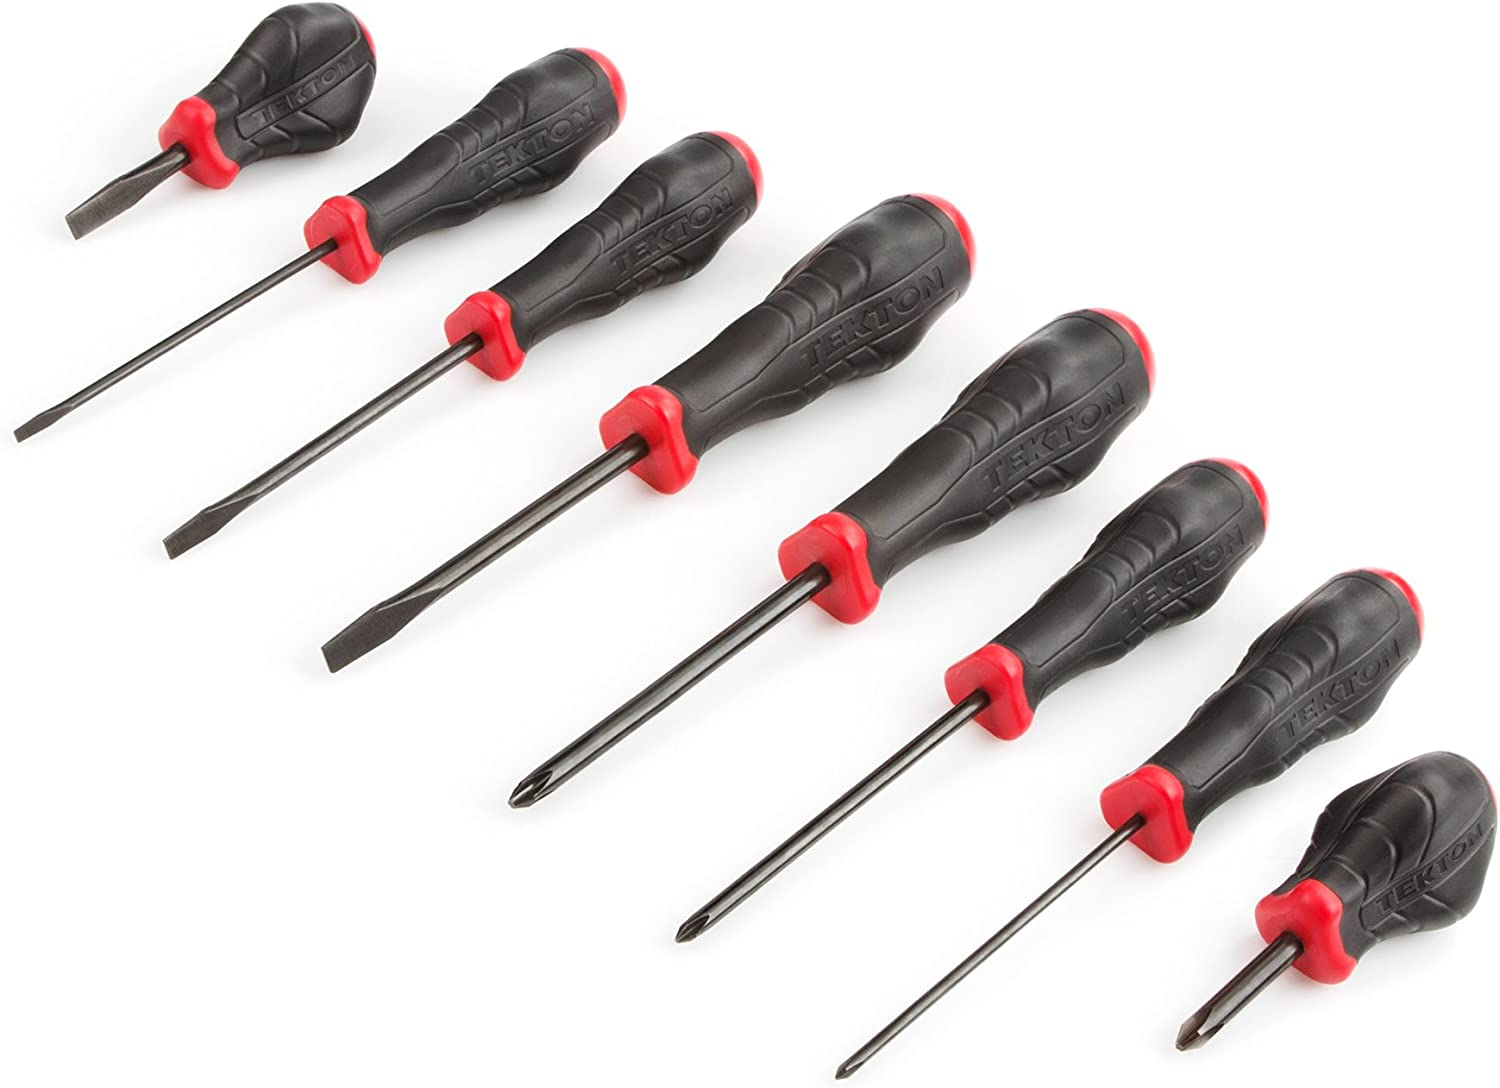 TEKTON 26757 Slotted and Phillips High-Torque Screwdriver Set 12-Pieces